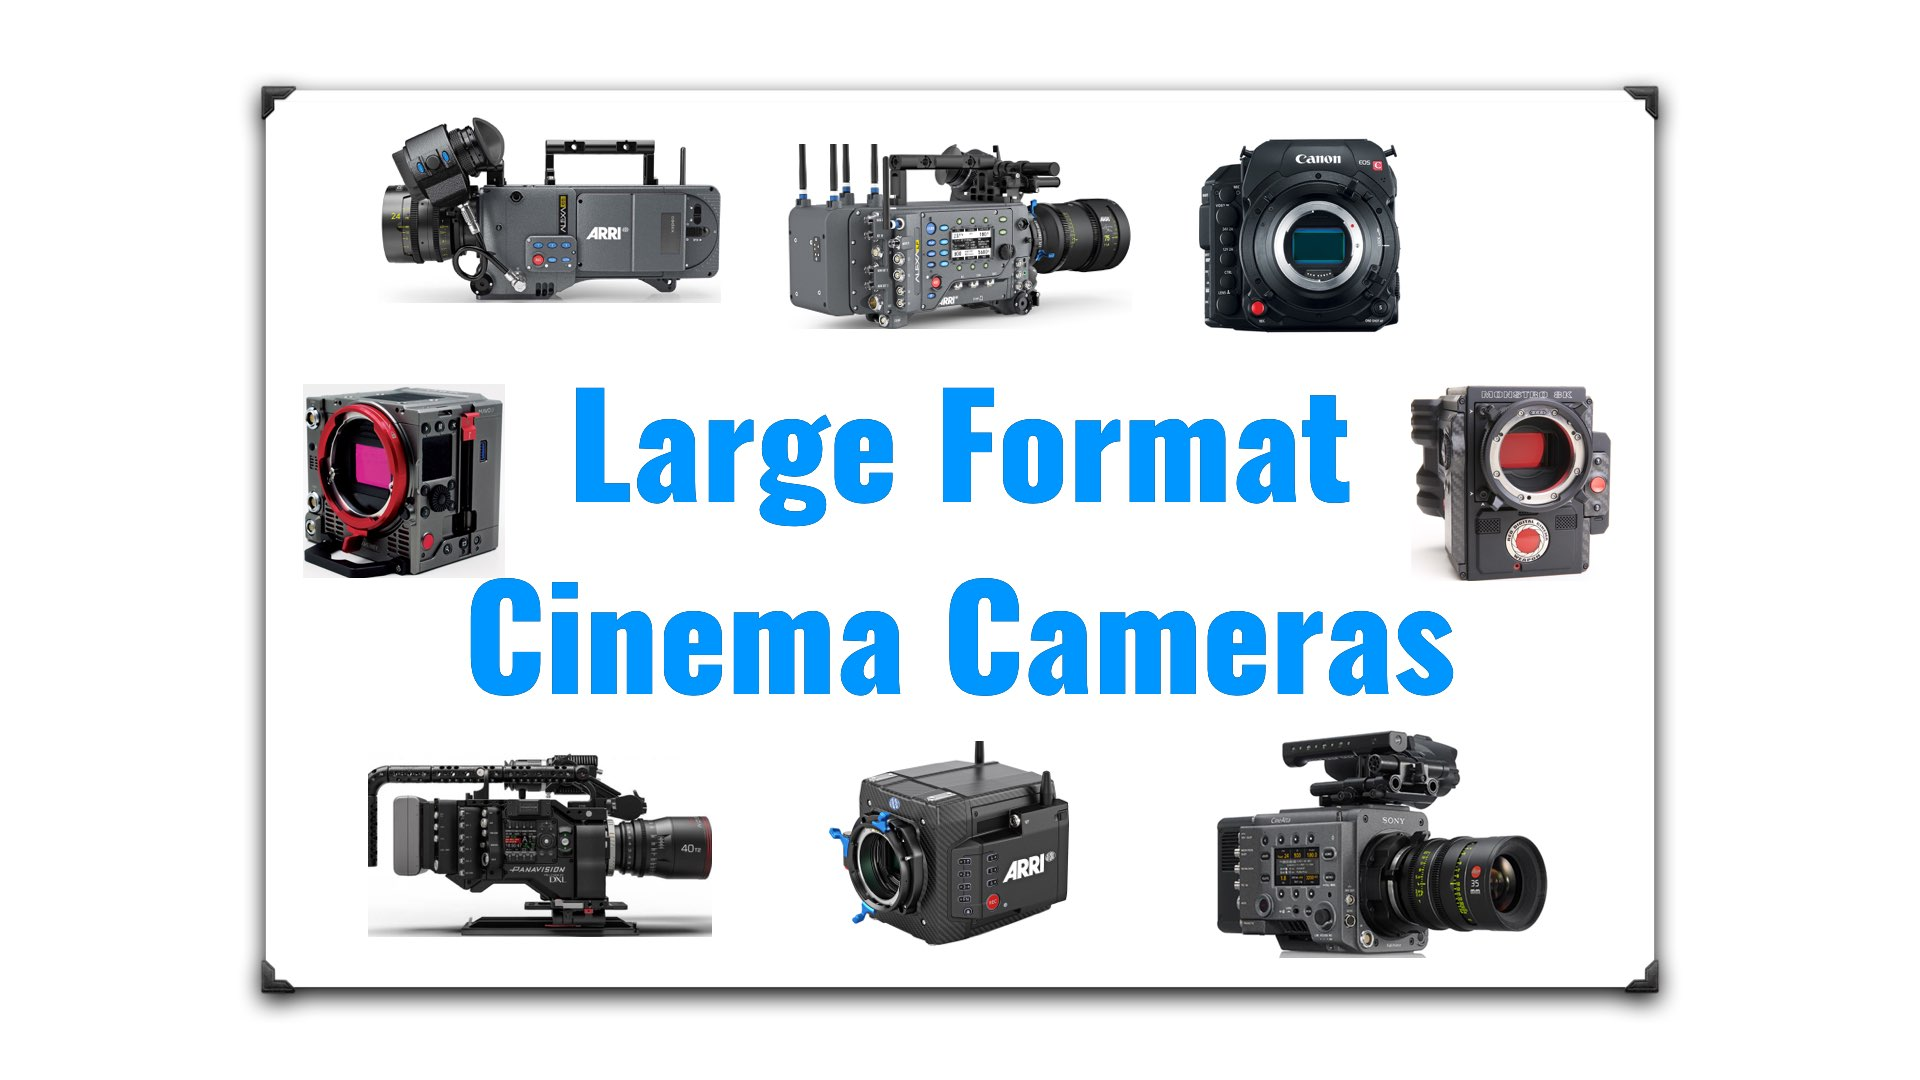 Y M Cinema - News and Insights on Digital Cinema